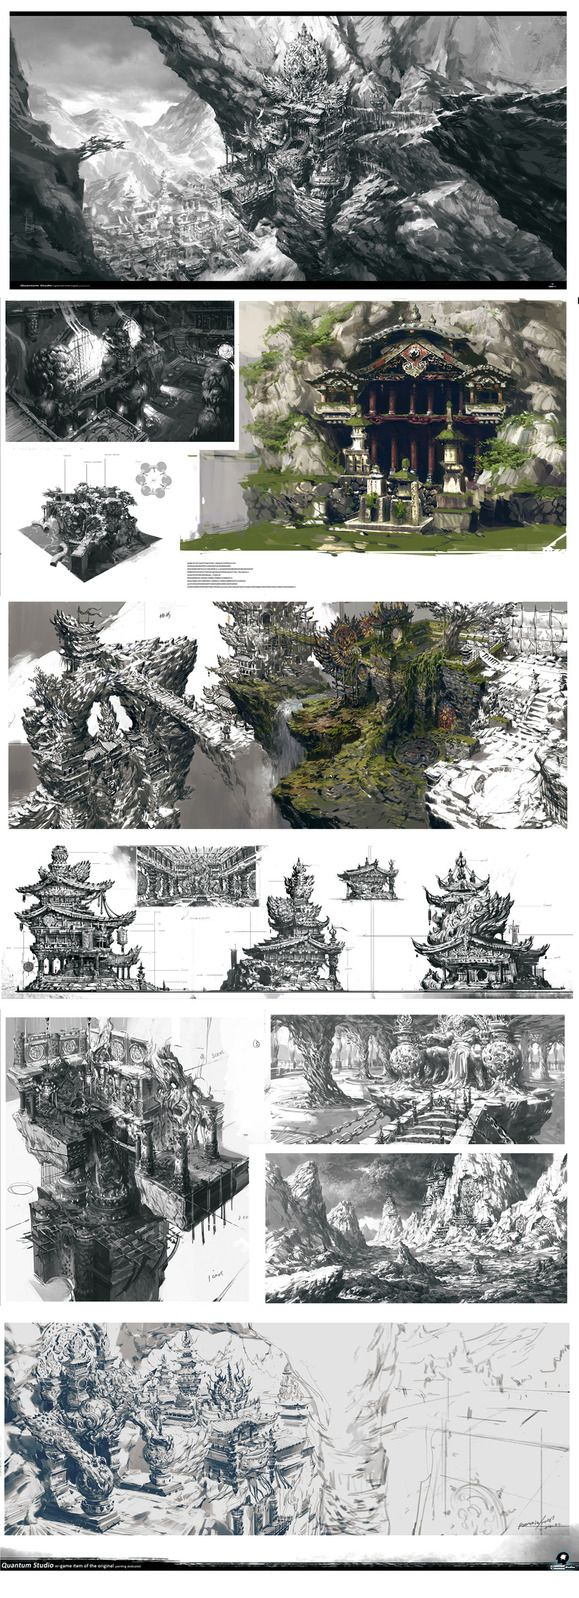 Here are some sketches and concept art that shows what goes into making the amazing views and scenes that are in the games we play today! Just look at all the detail put into making the sketches for the finished version!